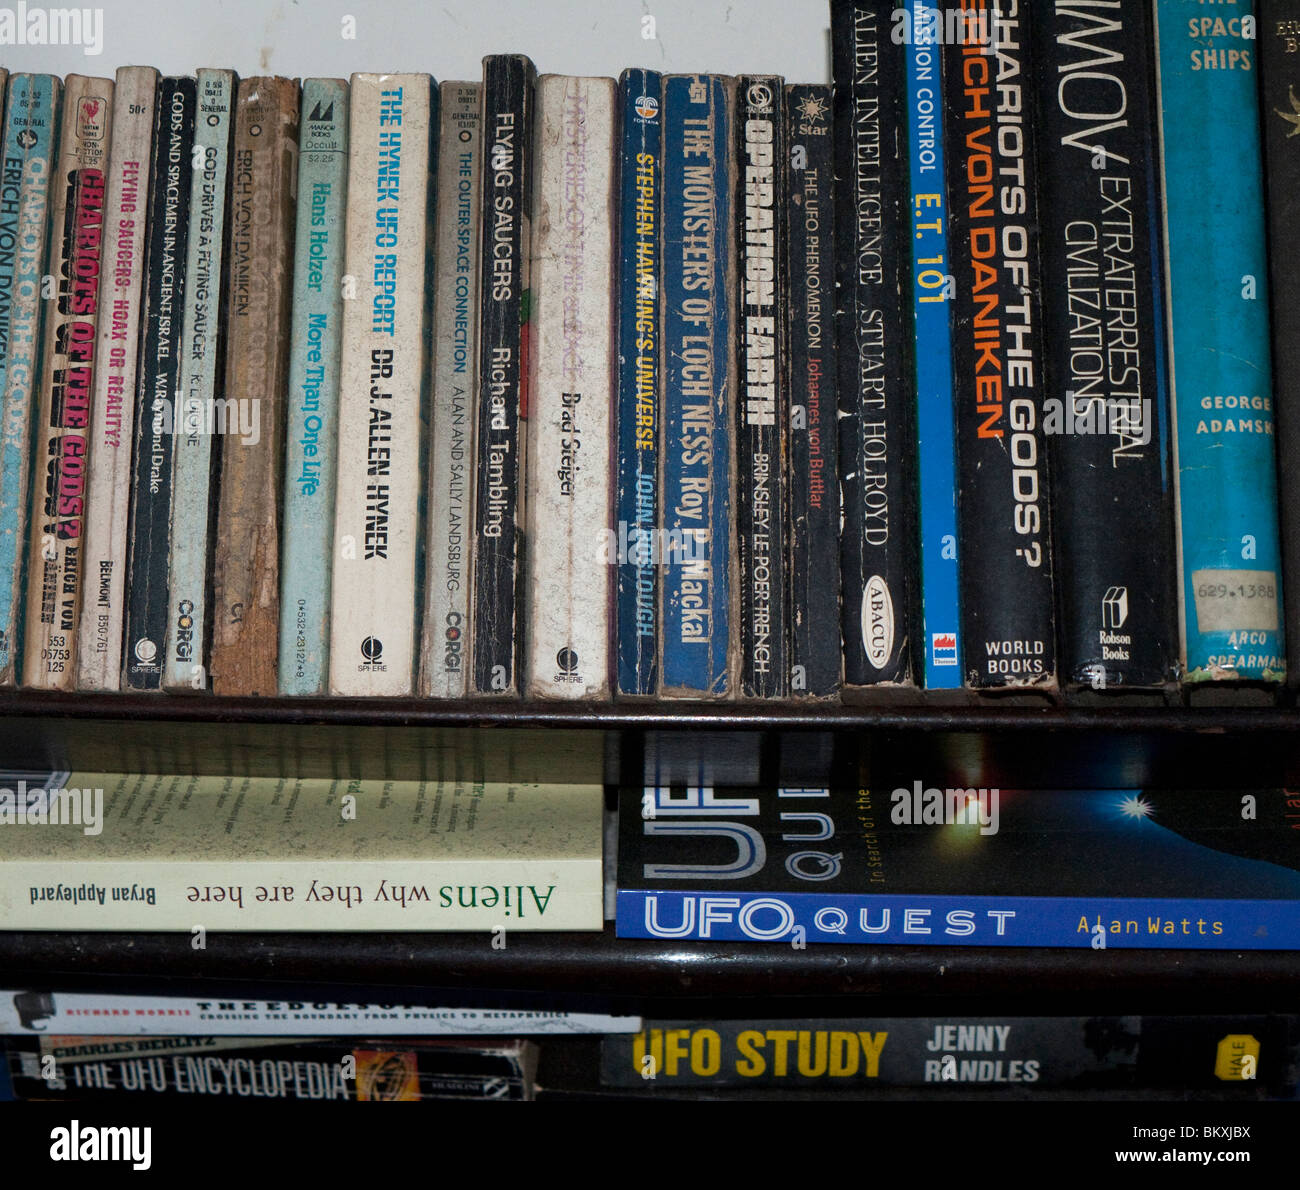 A selection of books on ufo's and aliens - Stock Image